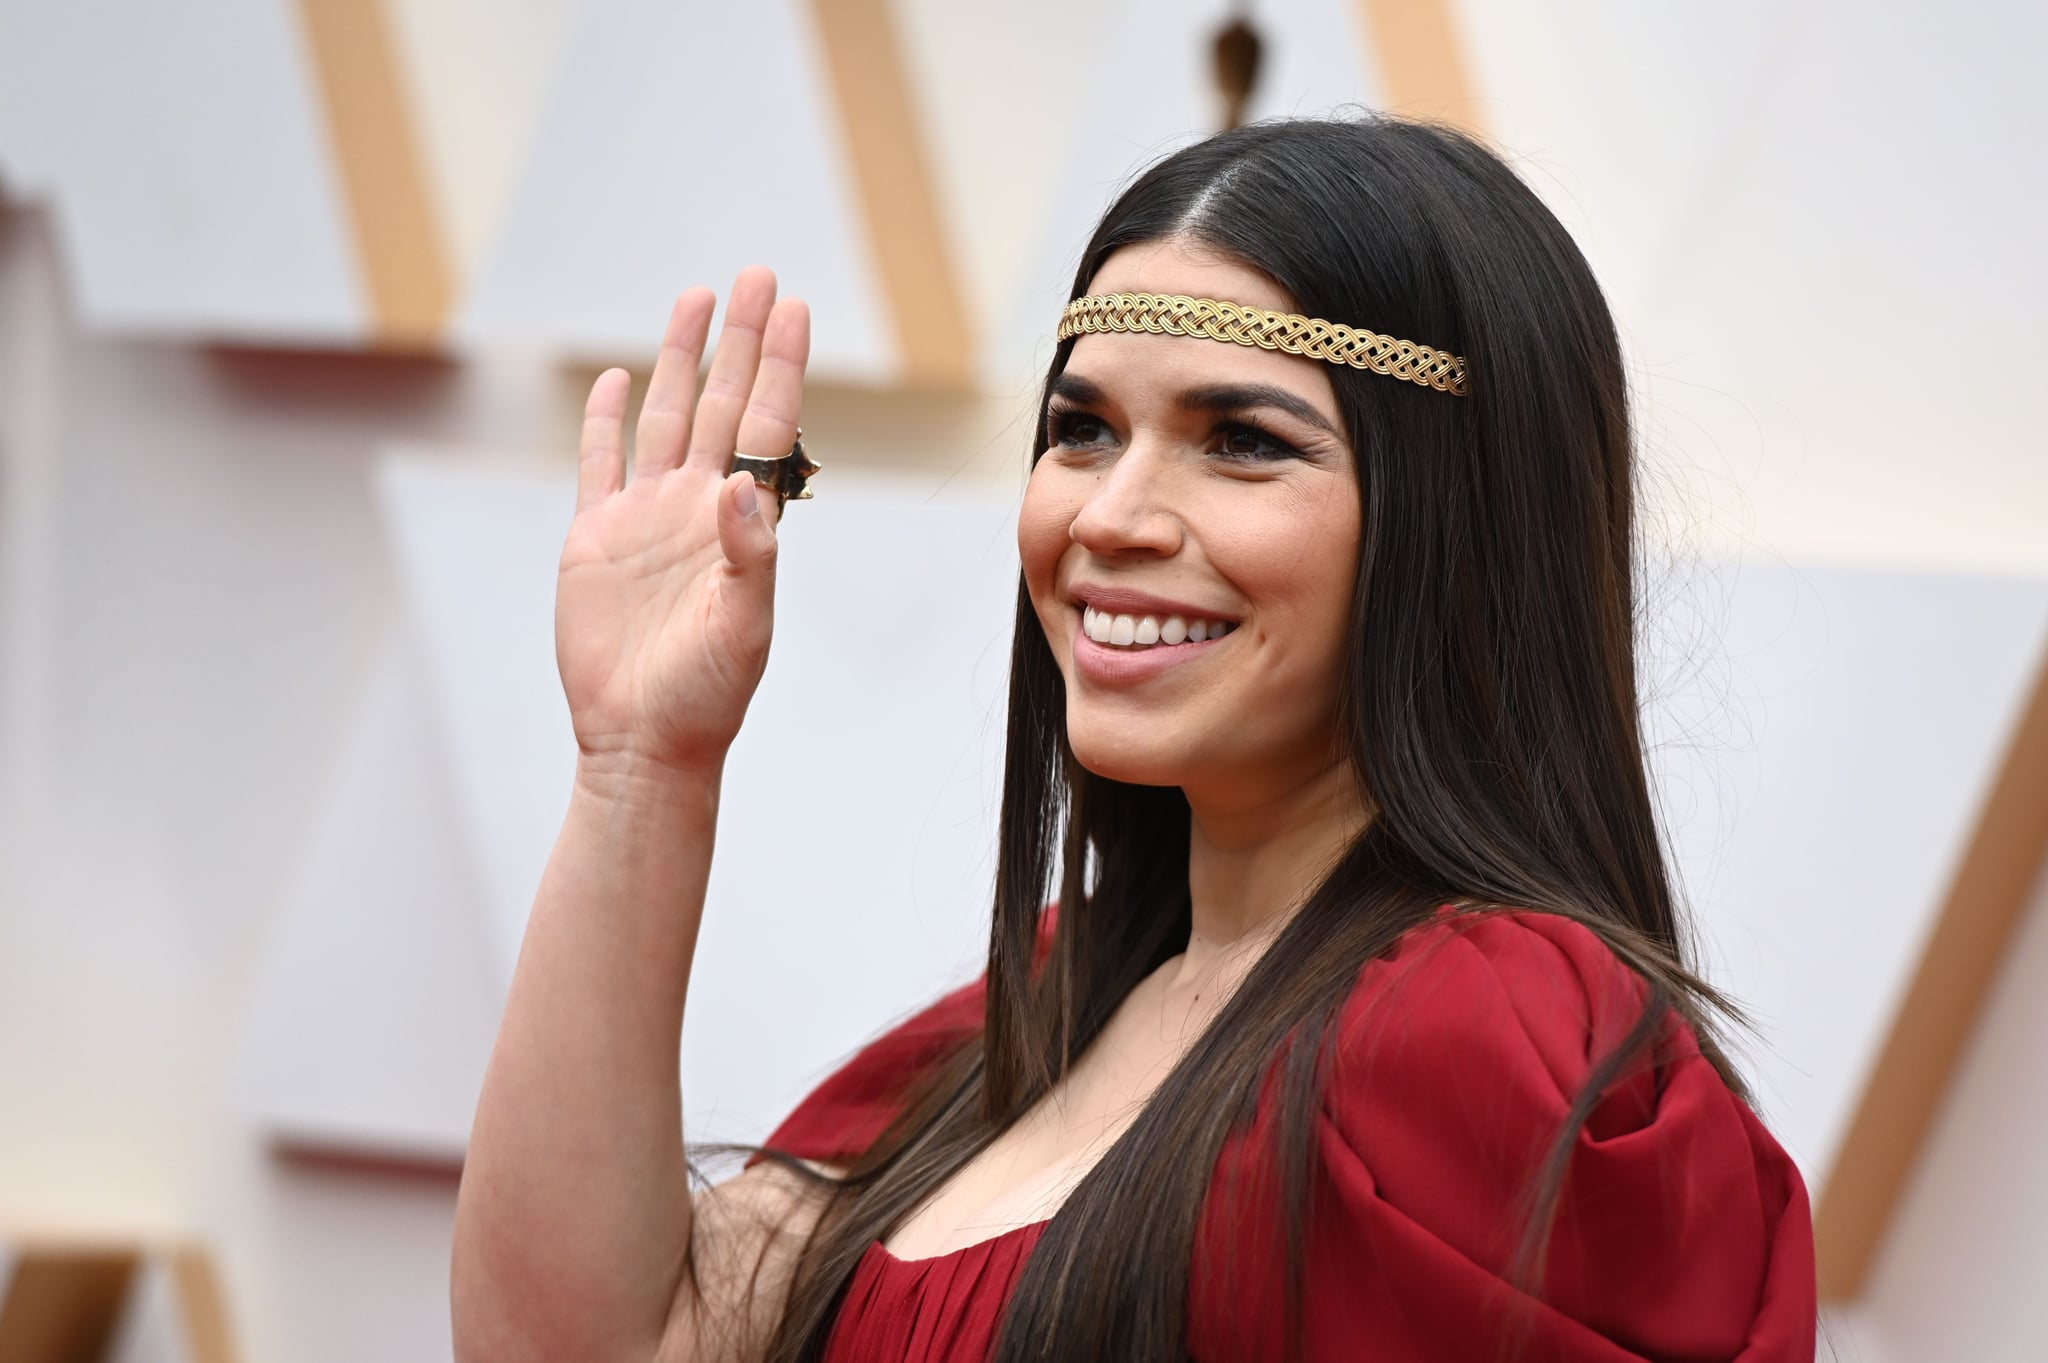 US actress America Ferrera arrives for the 92nd Oscars at the Dolby Theatre in Hollywood, California on February 9, 2020. (Photo by Robyn Beck / AFP) (Photo by ROBYN BECK/AFP via Getty Images)